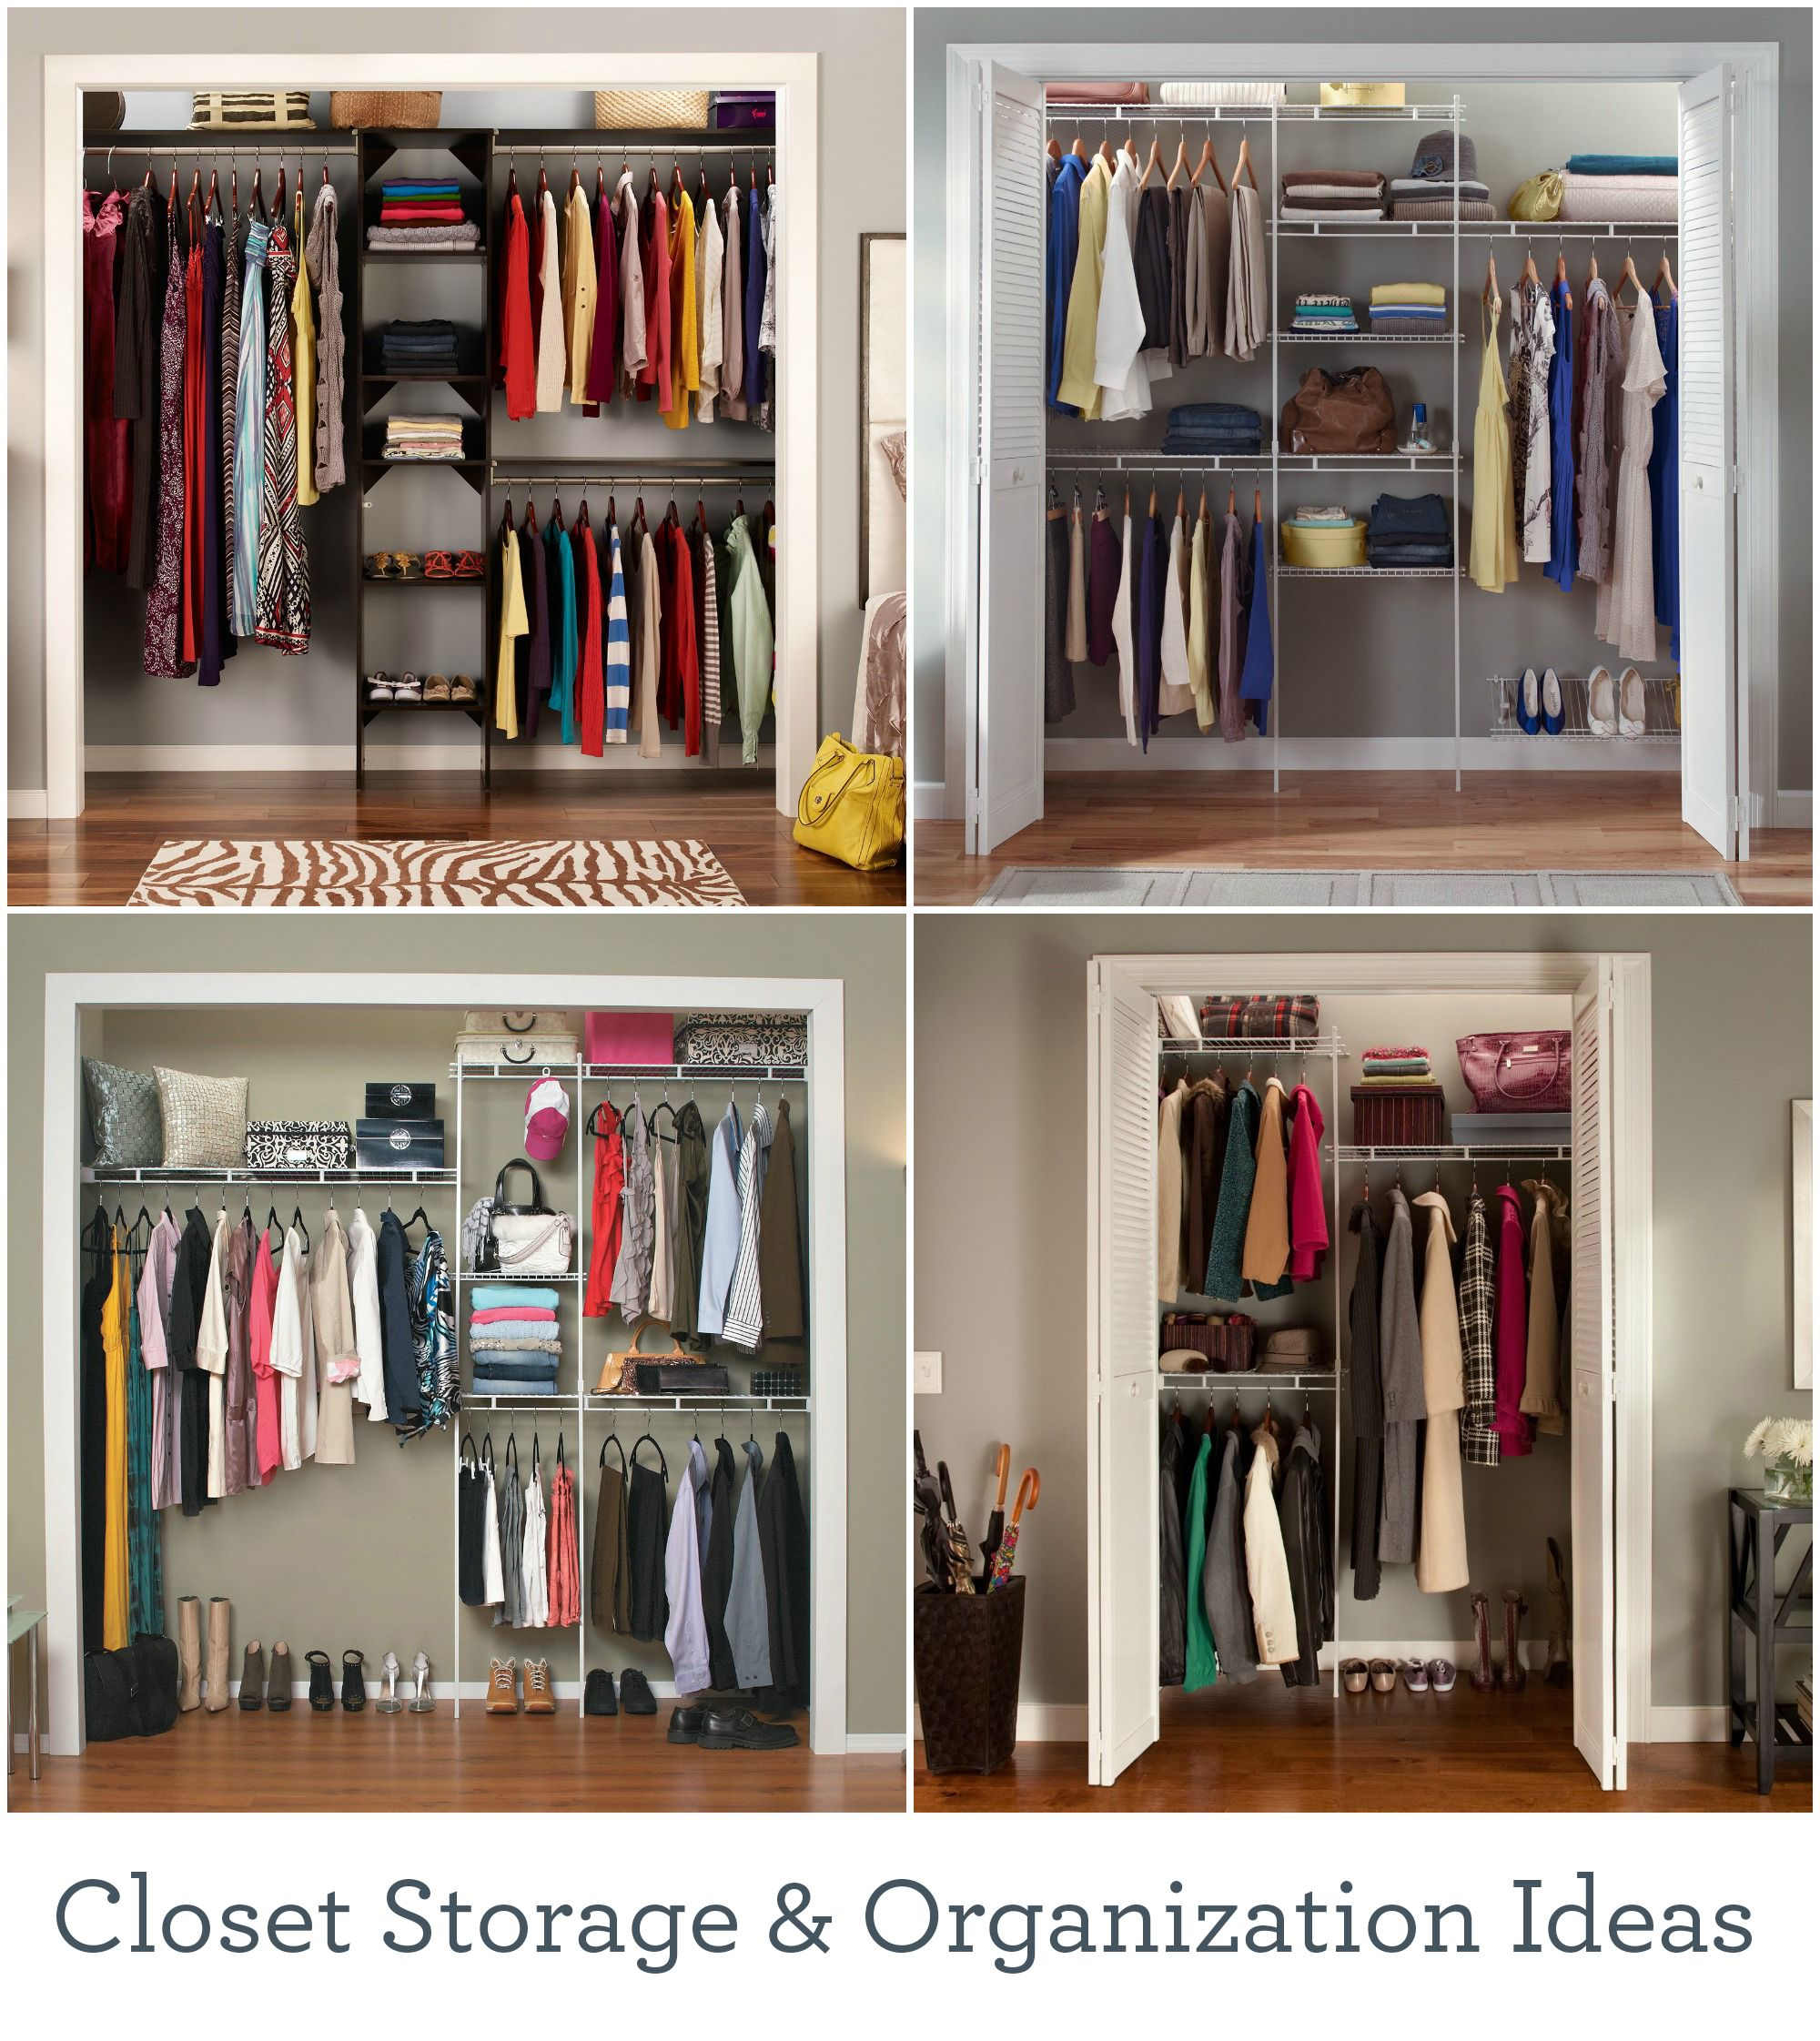 Make The Most Of Your Closet Space With These Storage